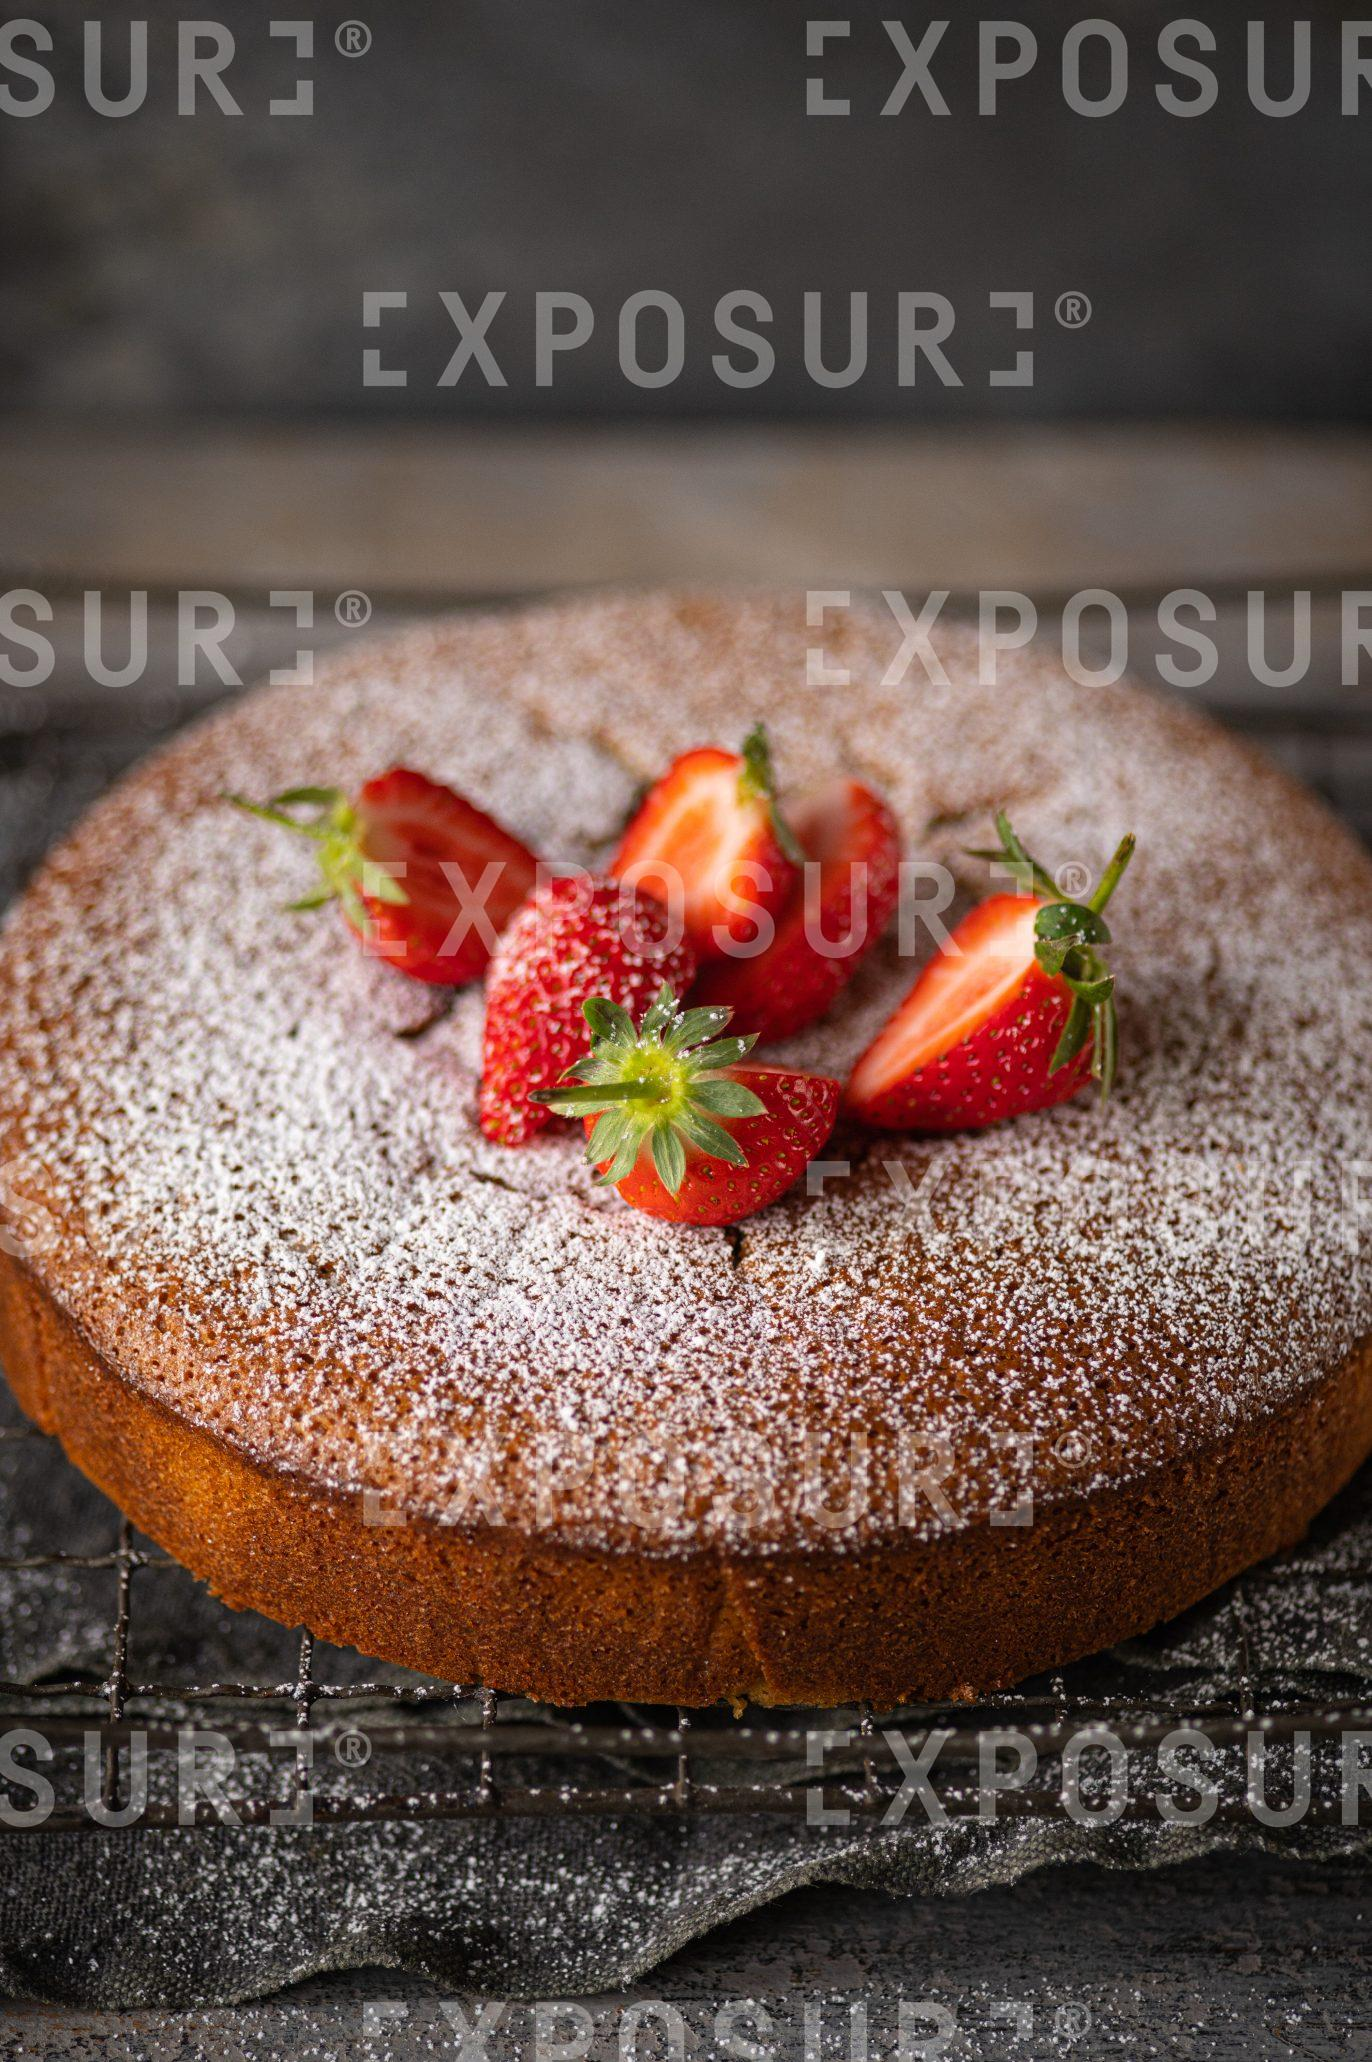 Pistachio, polenta and olive oil cake with strawberries